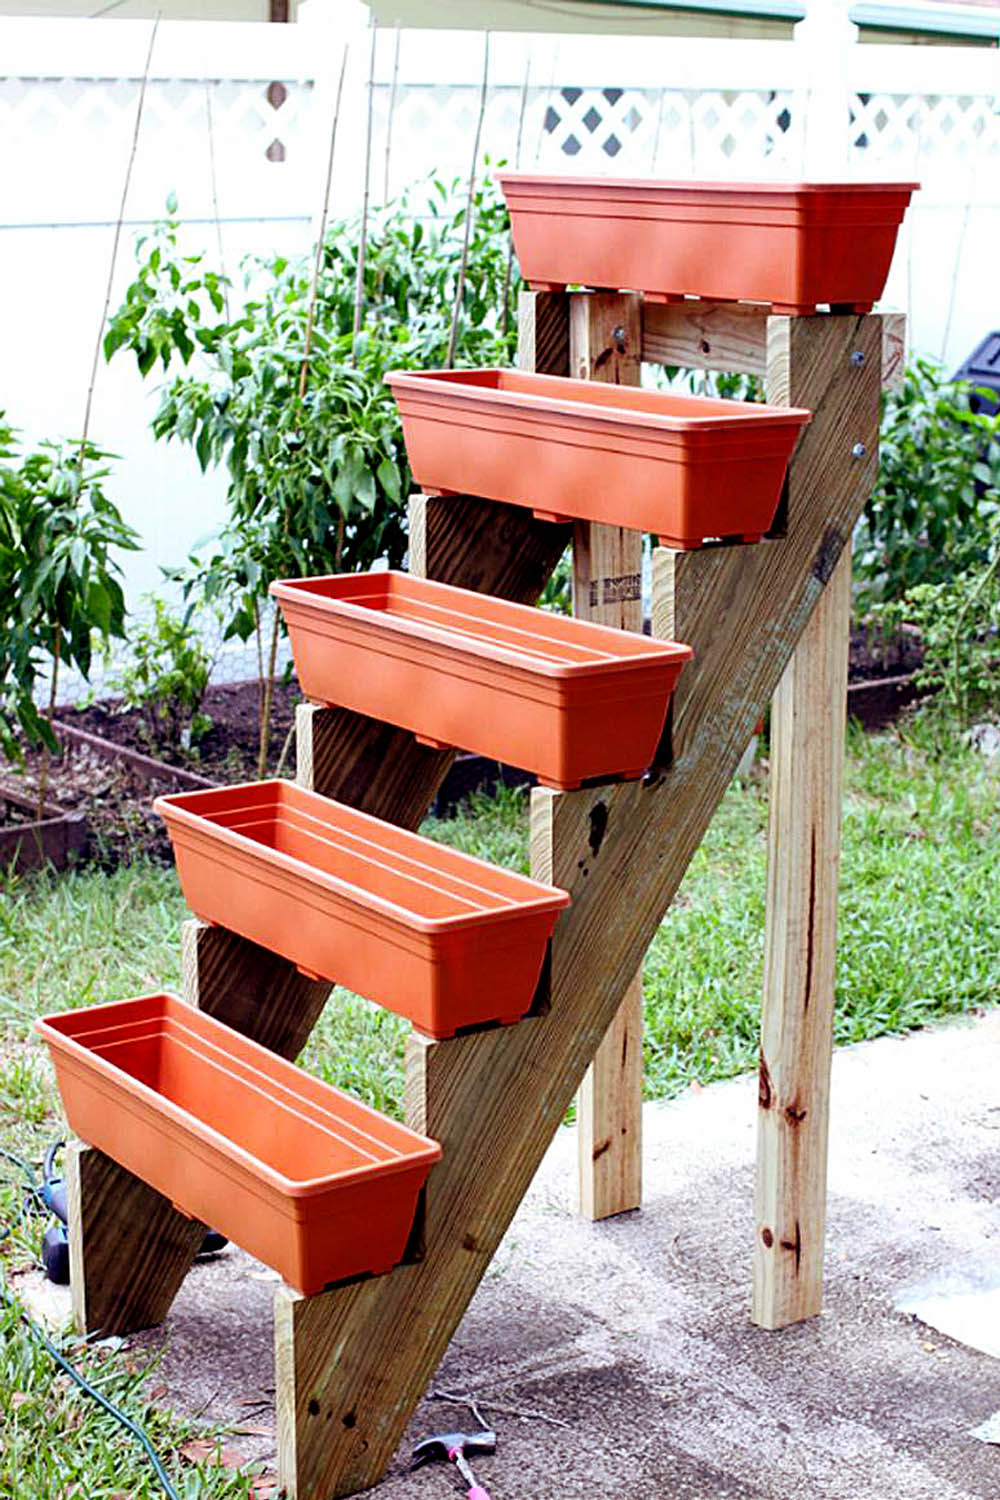 diy-vertical-garden-planter2